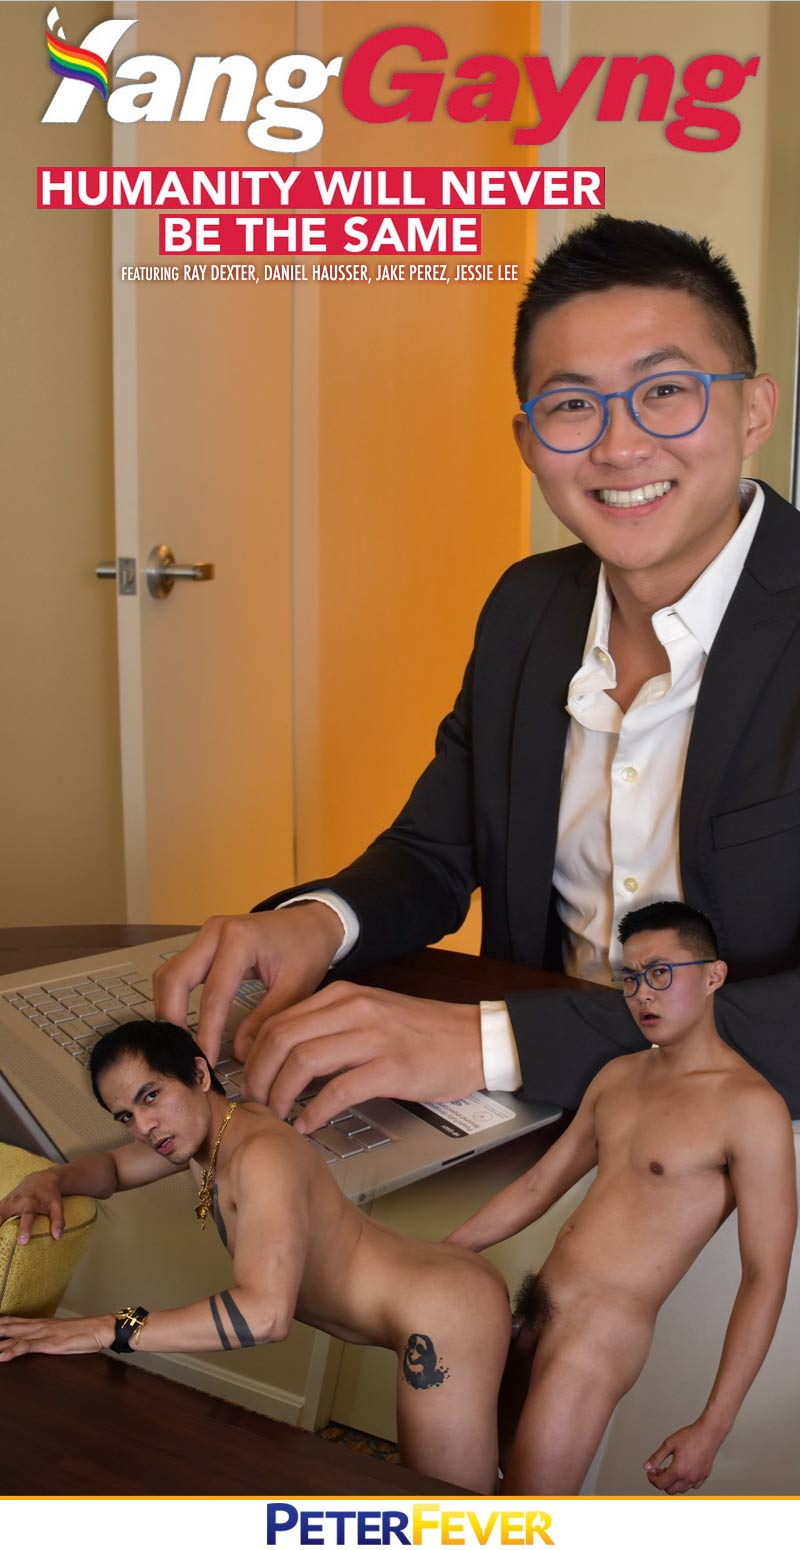 The Yang Gayng: THE FREECUM DIVIDEND, Episode One (Ray Dexter Fucks Jake Perez) at PeterFever.com